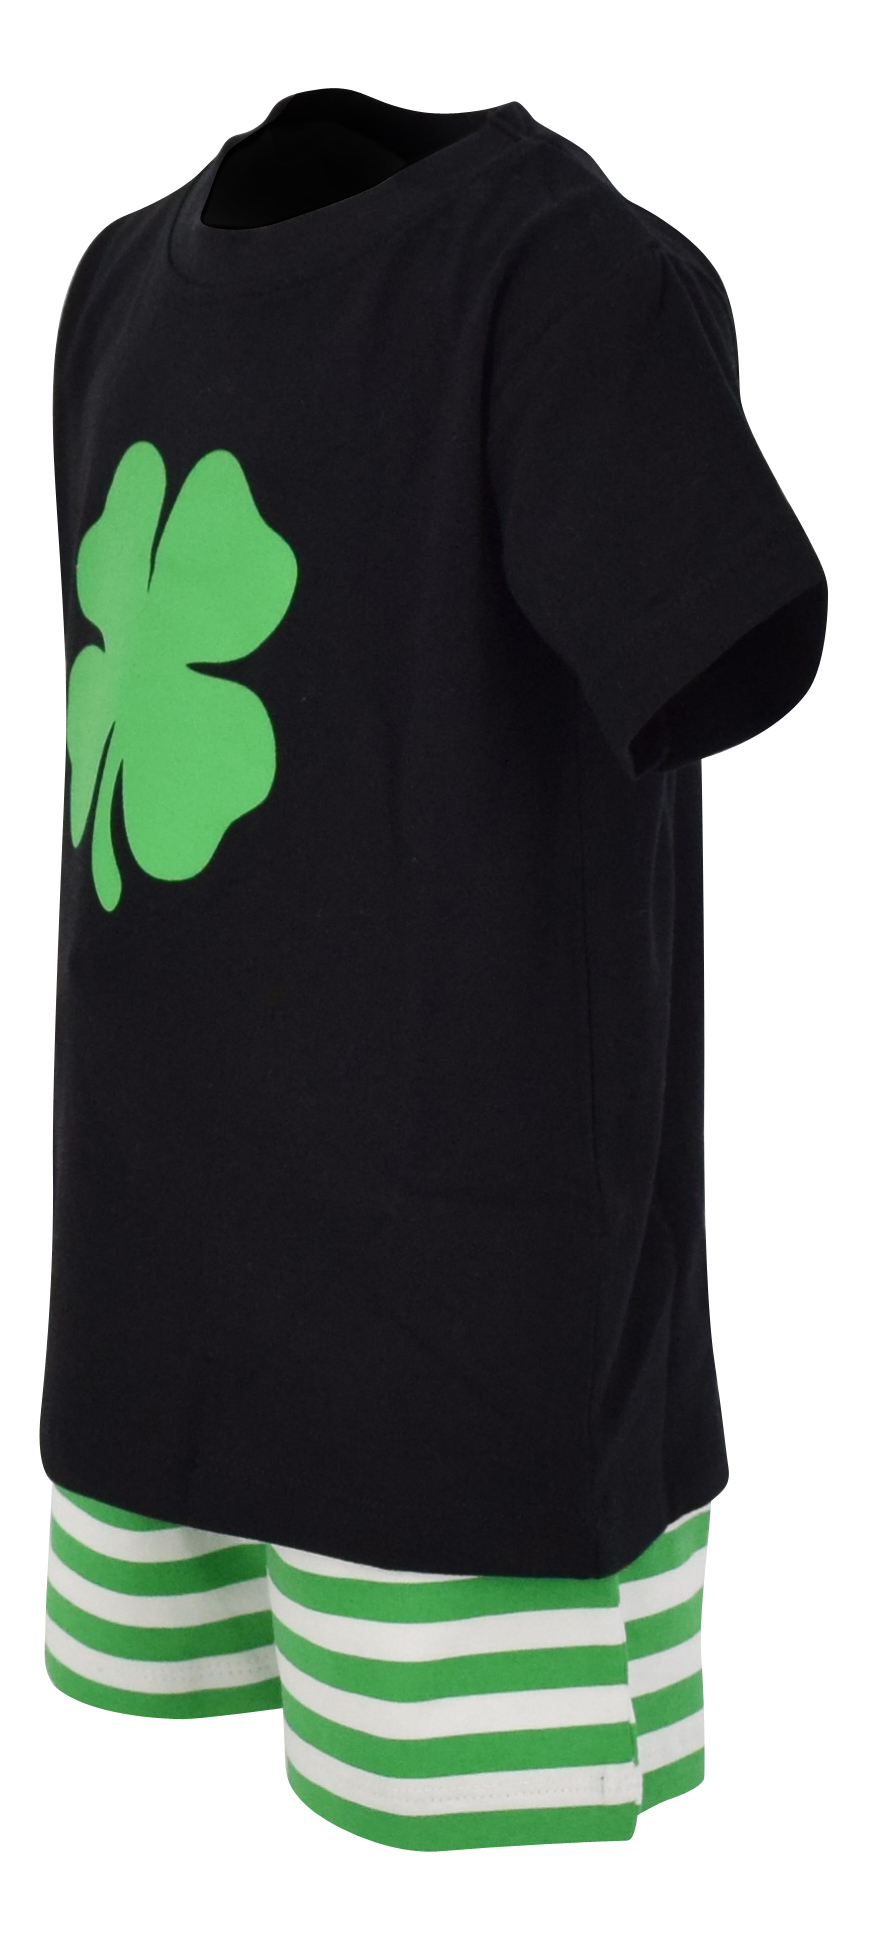 Boys-2-Piece-ST-Patricks-Day-Clover-Outfit-2t-3t-4t-5-6-7-8-Toddler-Kids-Clothes thumbnail 26